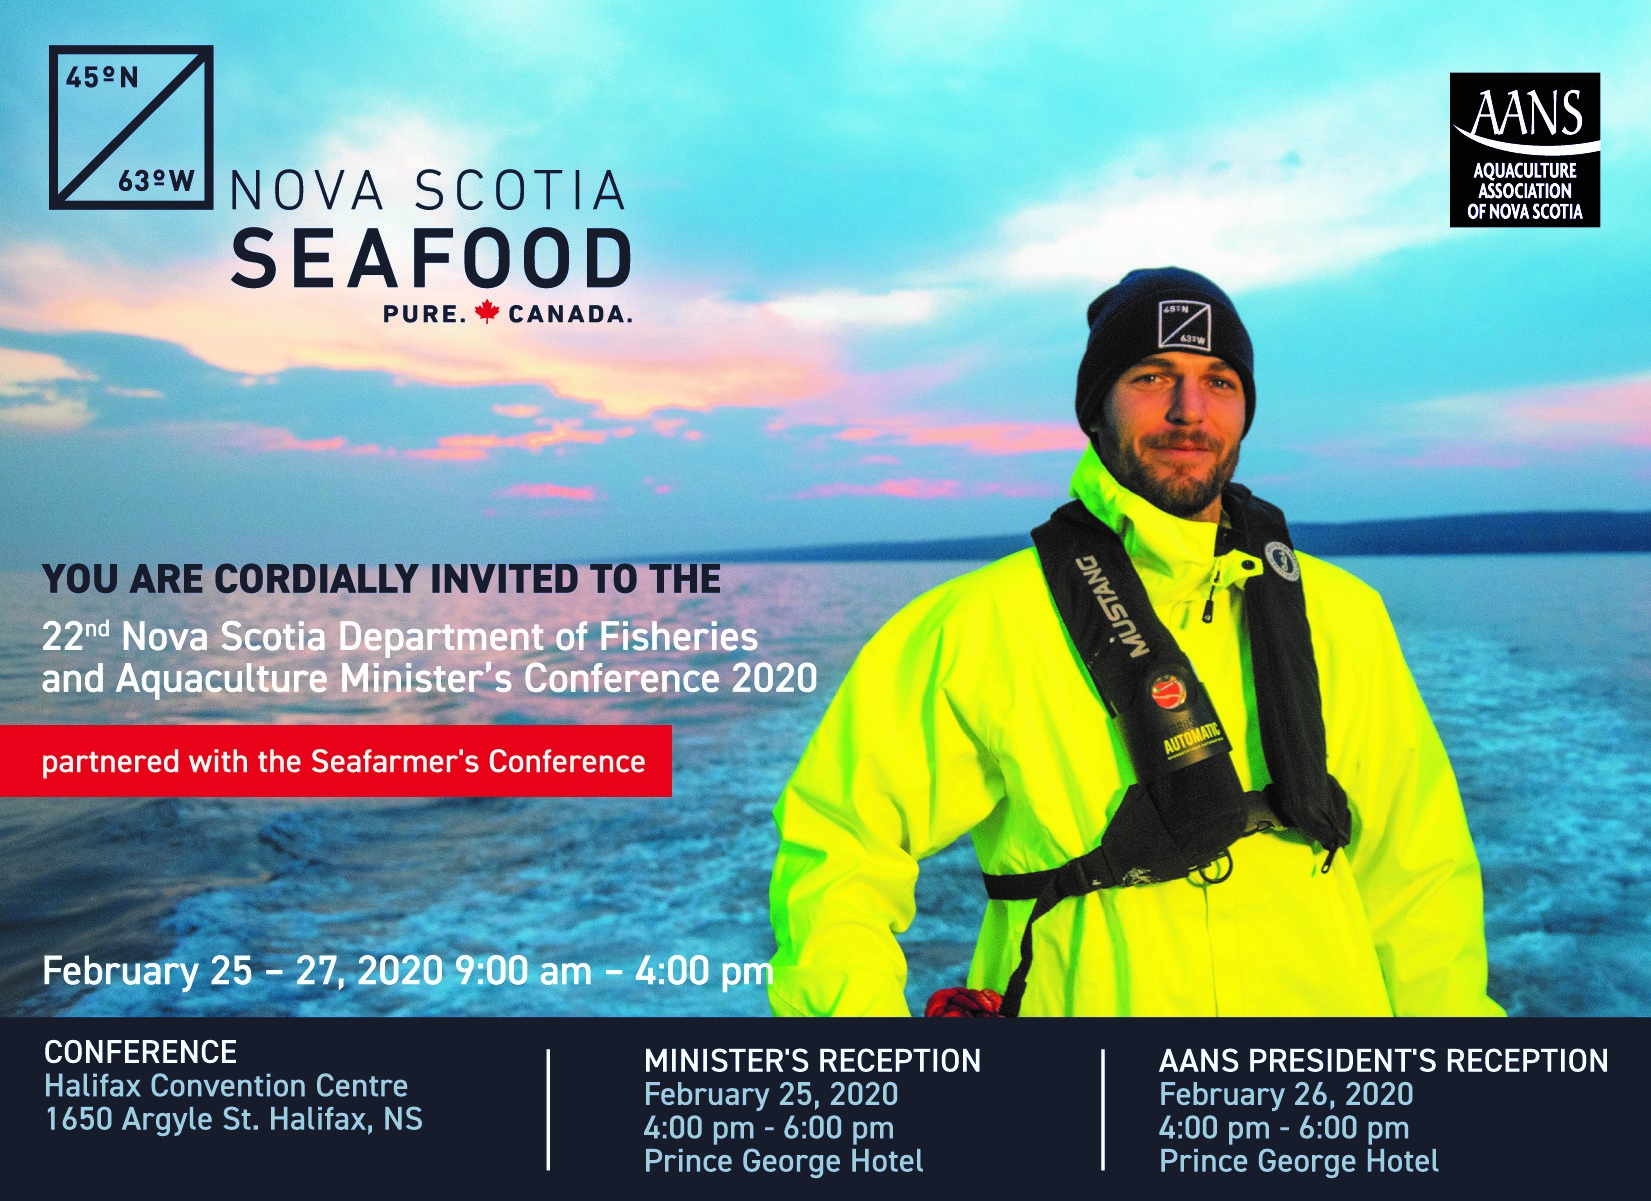 Fisheries and Aquaculture Minister Keith Colwell welcomes harvesters, processors and exporters to the Halifax Convention Centre, Feb. 25-27, to share knowledge and expertise, and hear from international speakers.